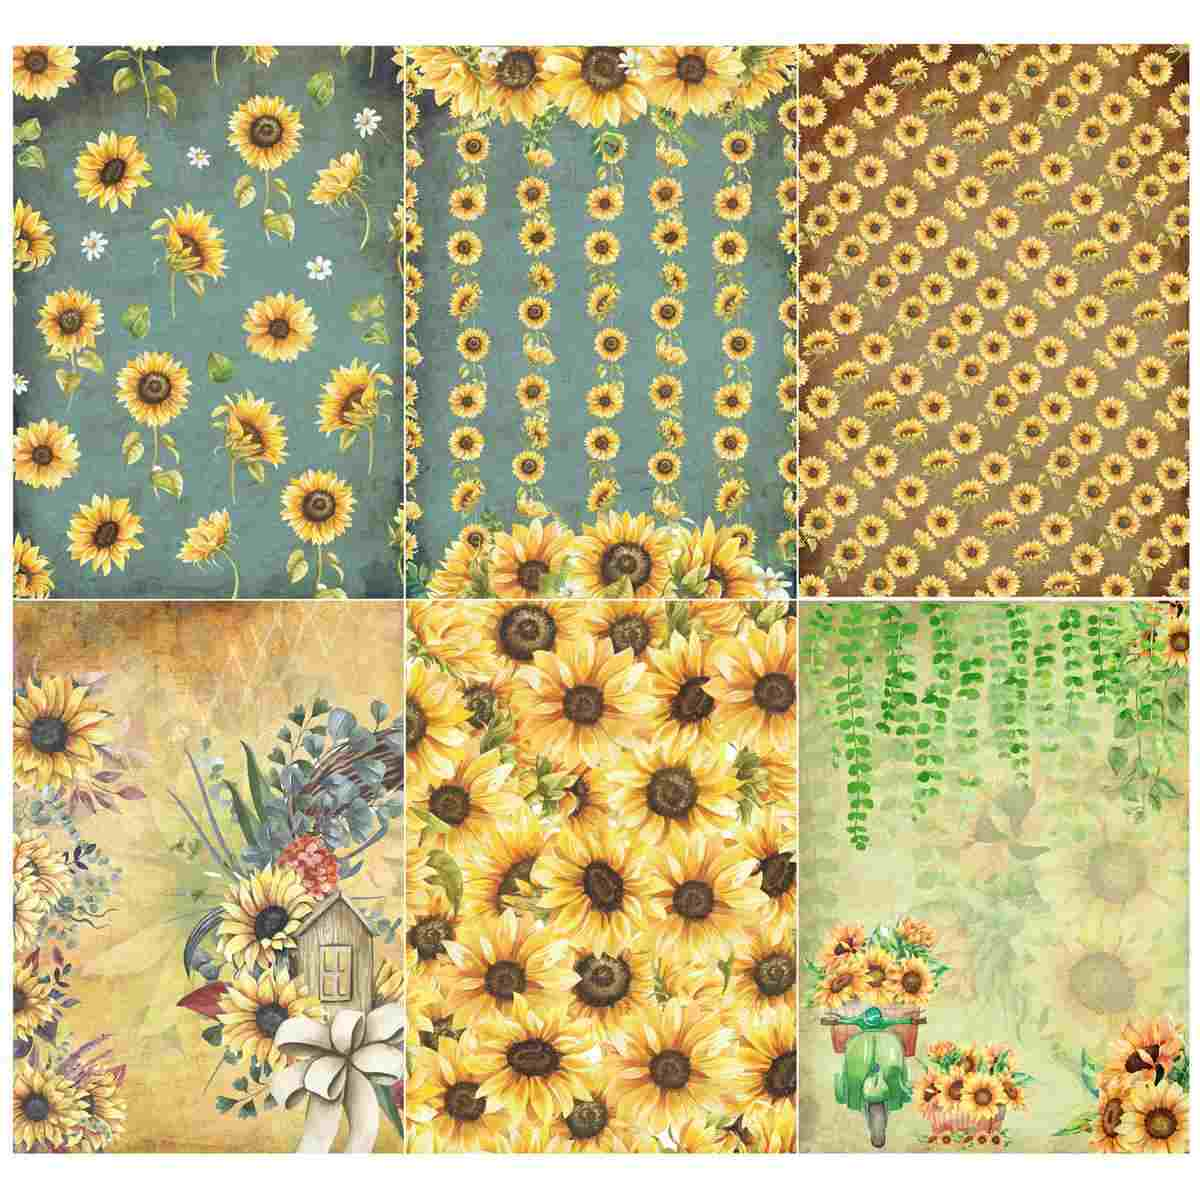 Helianthus A4 Size Printed Paper